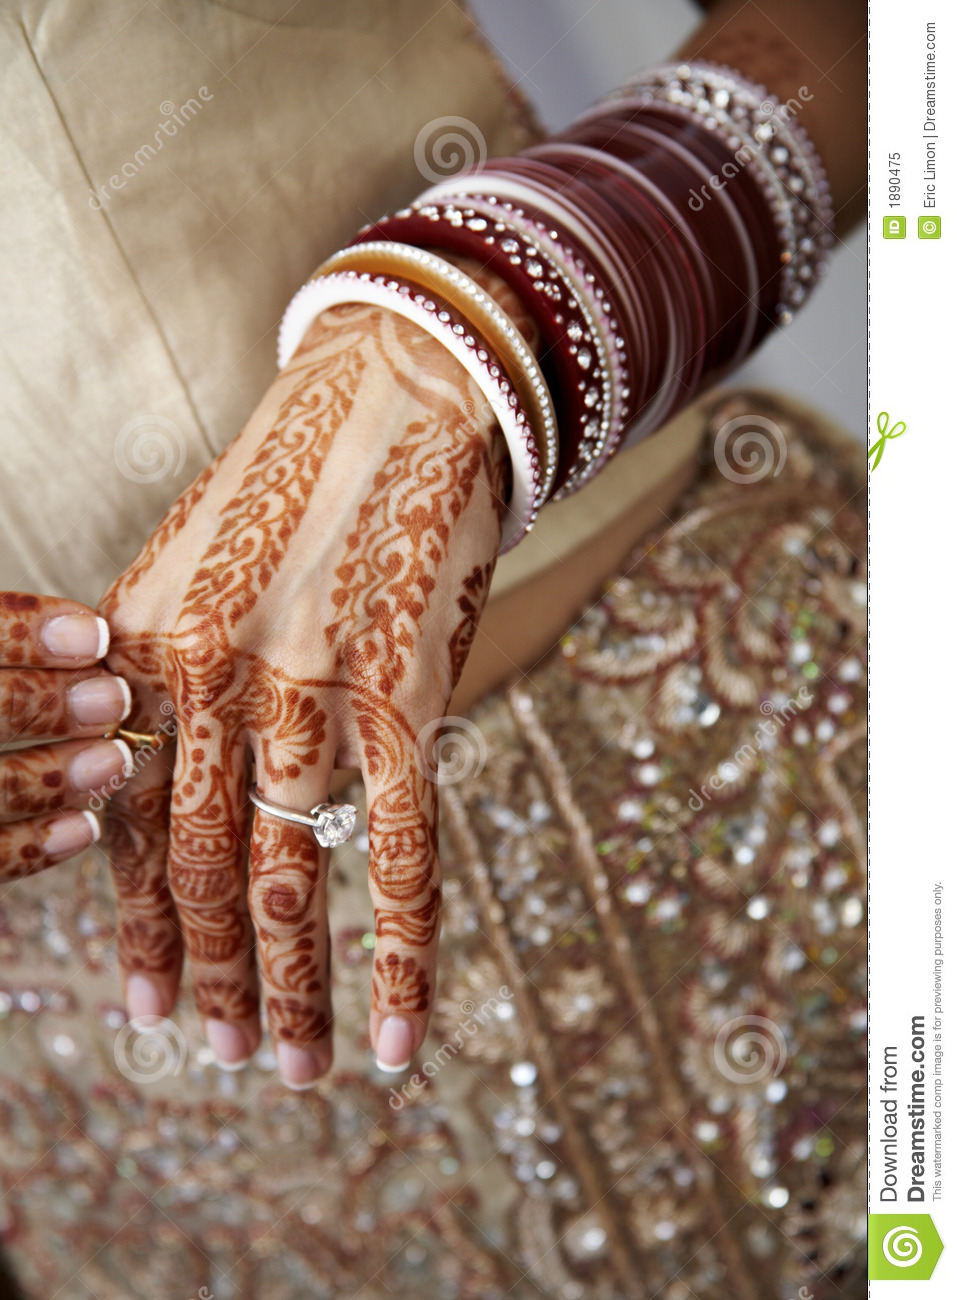 hindu wedding ceremony hand detail stock image image of